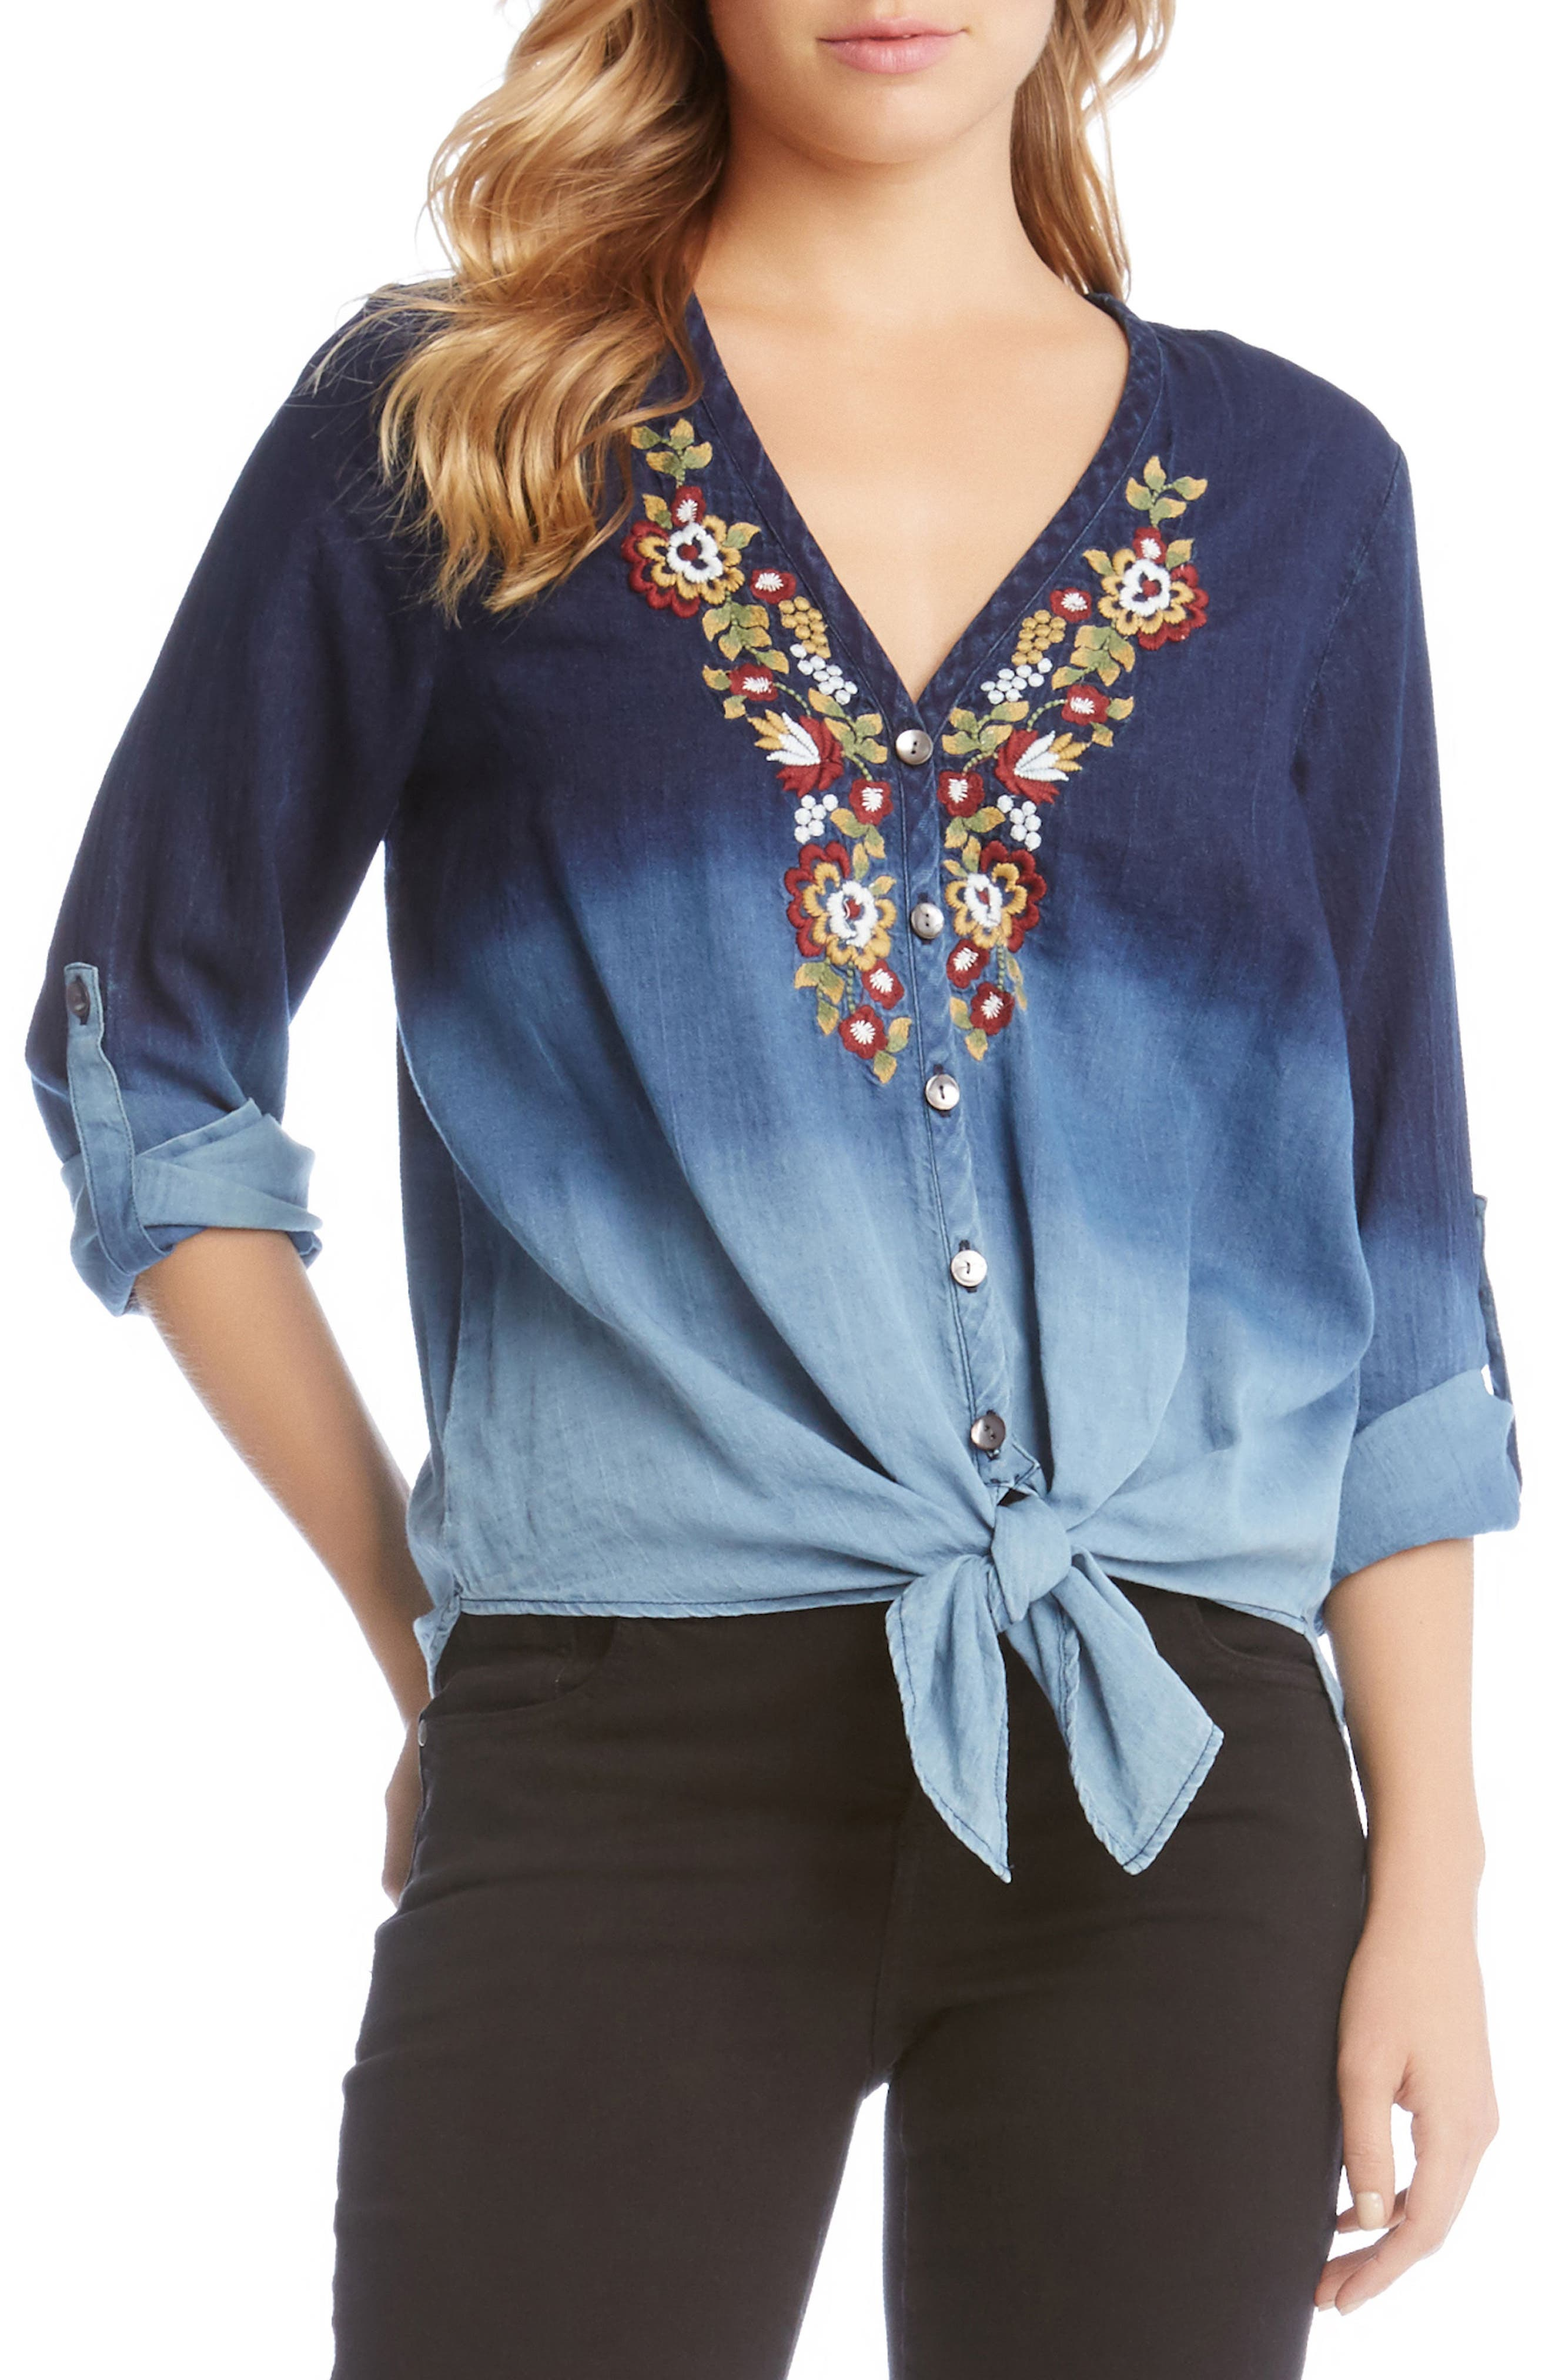 Kane Kane Embroidered Ombré Top,                         Main,                         color,